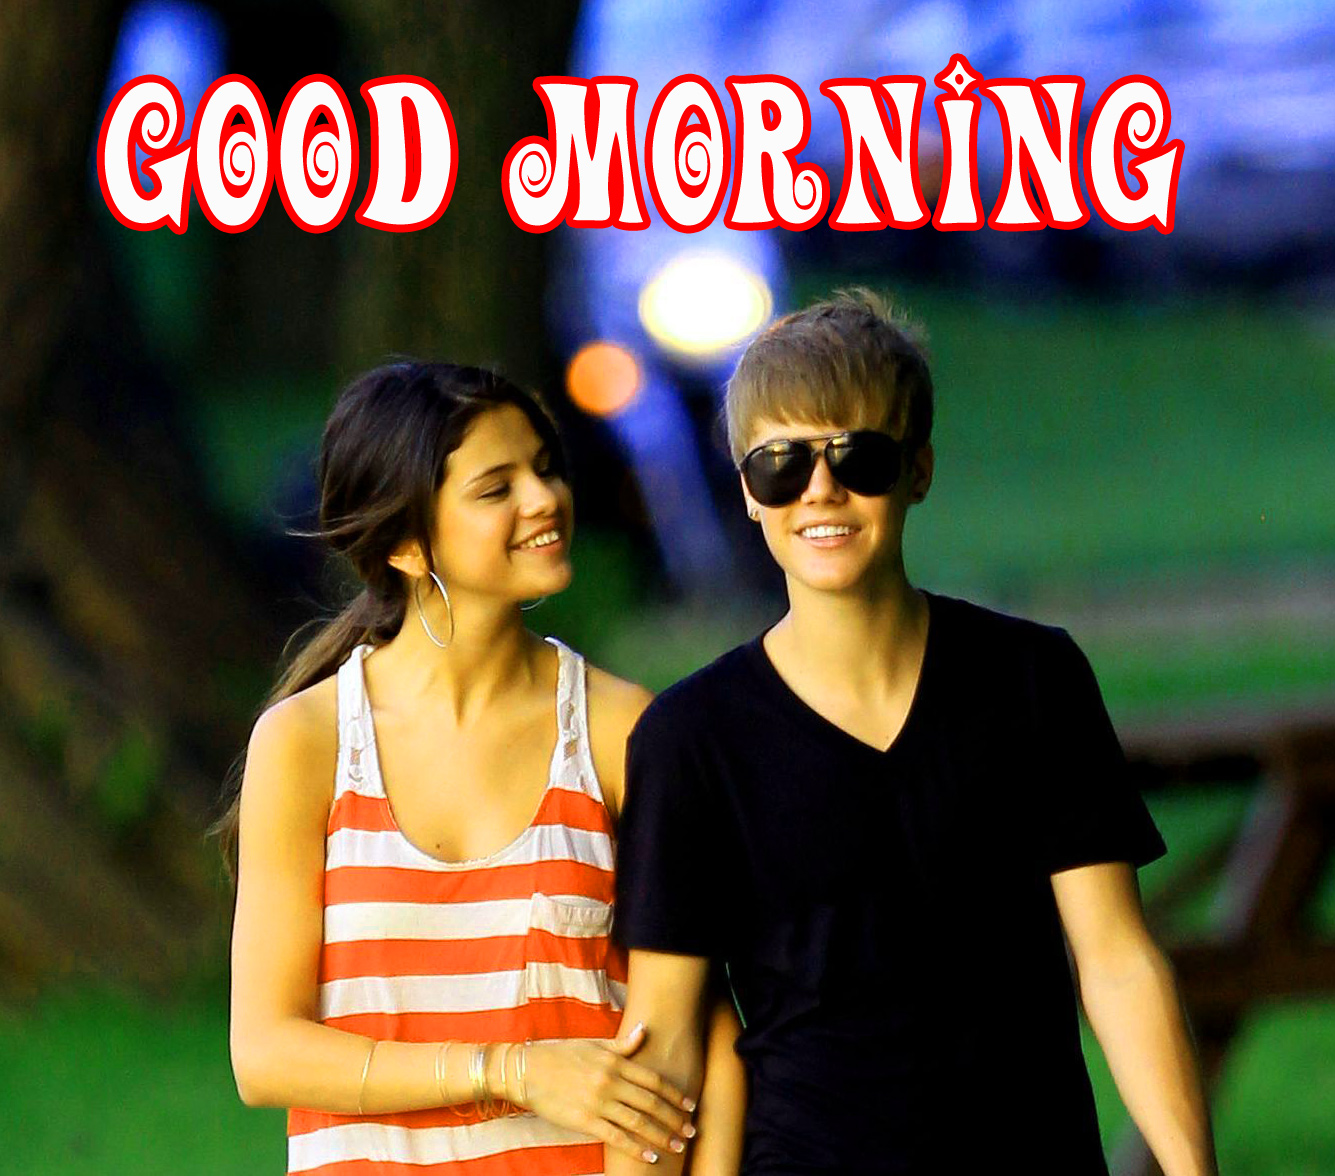 Special Good Morning Images Wallpaper Pics Download for Whatsapp